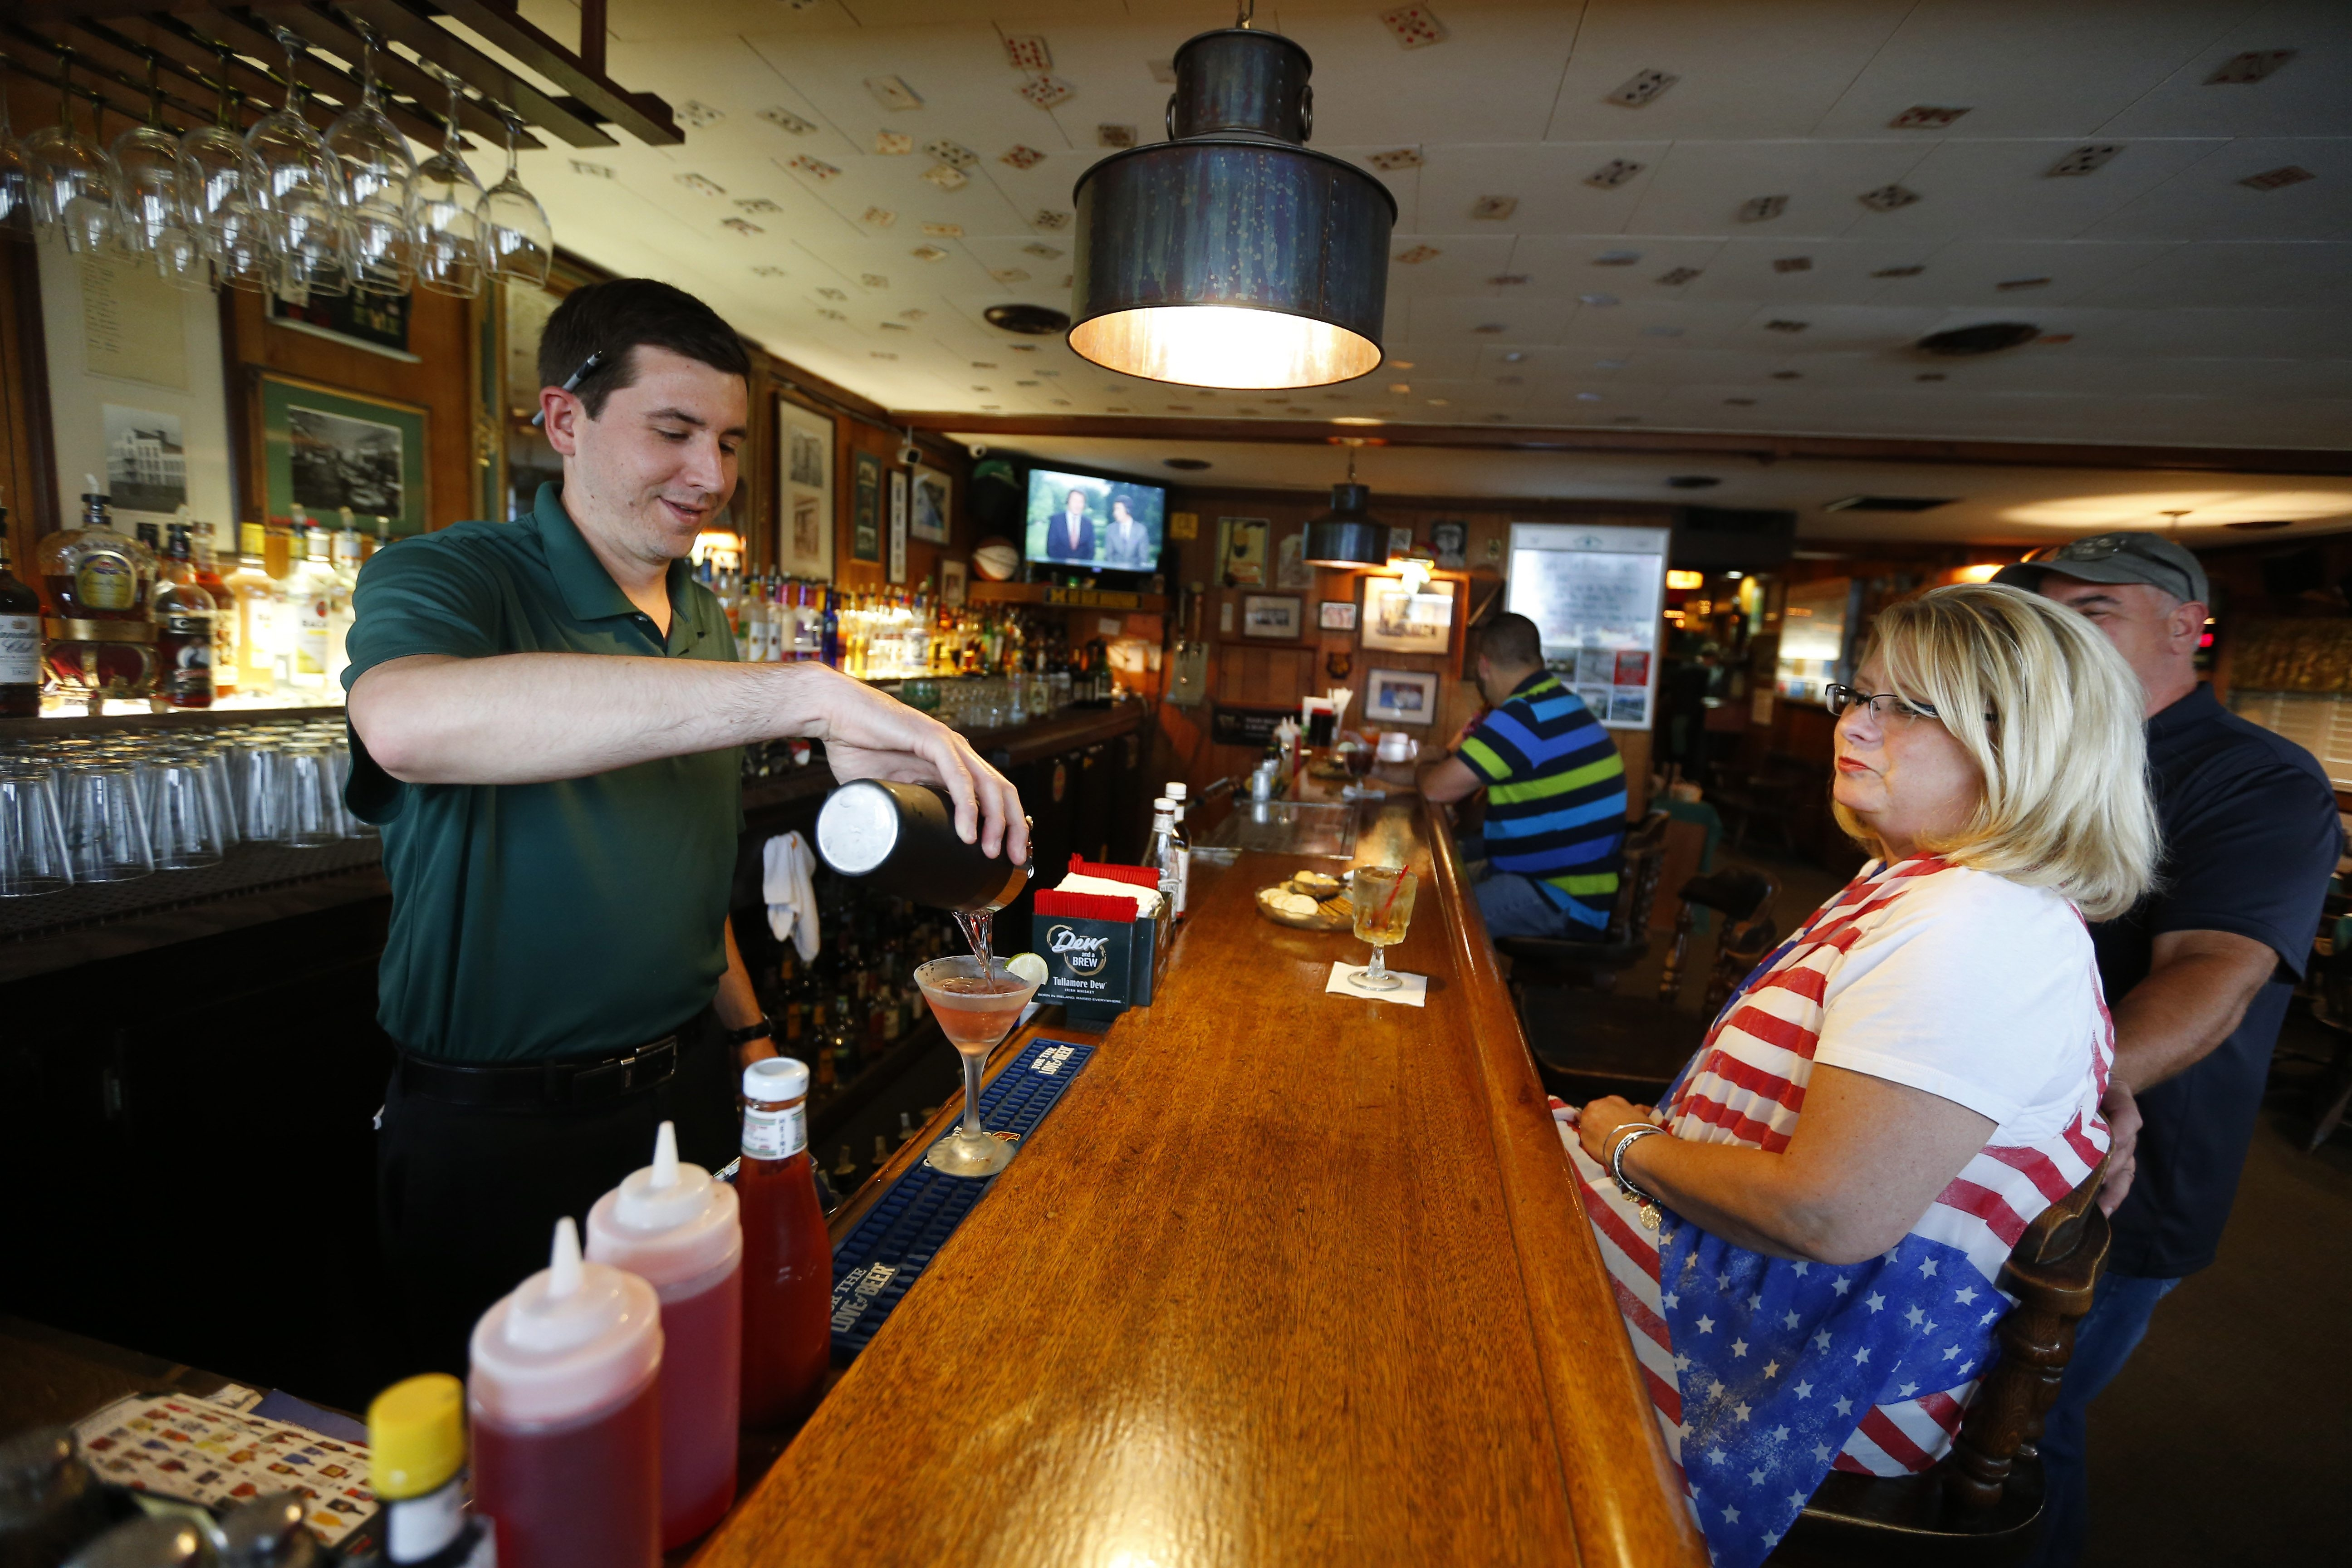 Ryan Ennis, left, pours a cosmopolitan for Renee Eberhard at Danny Sheehan's Steakhouse in Lockport, where many of the dishes failed to impress on a recent visit.